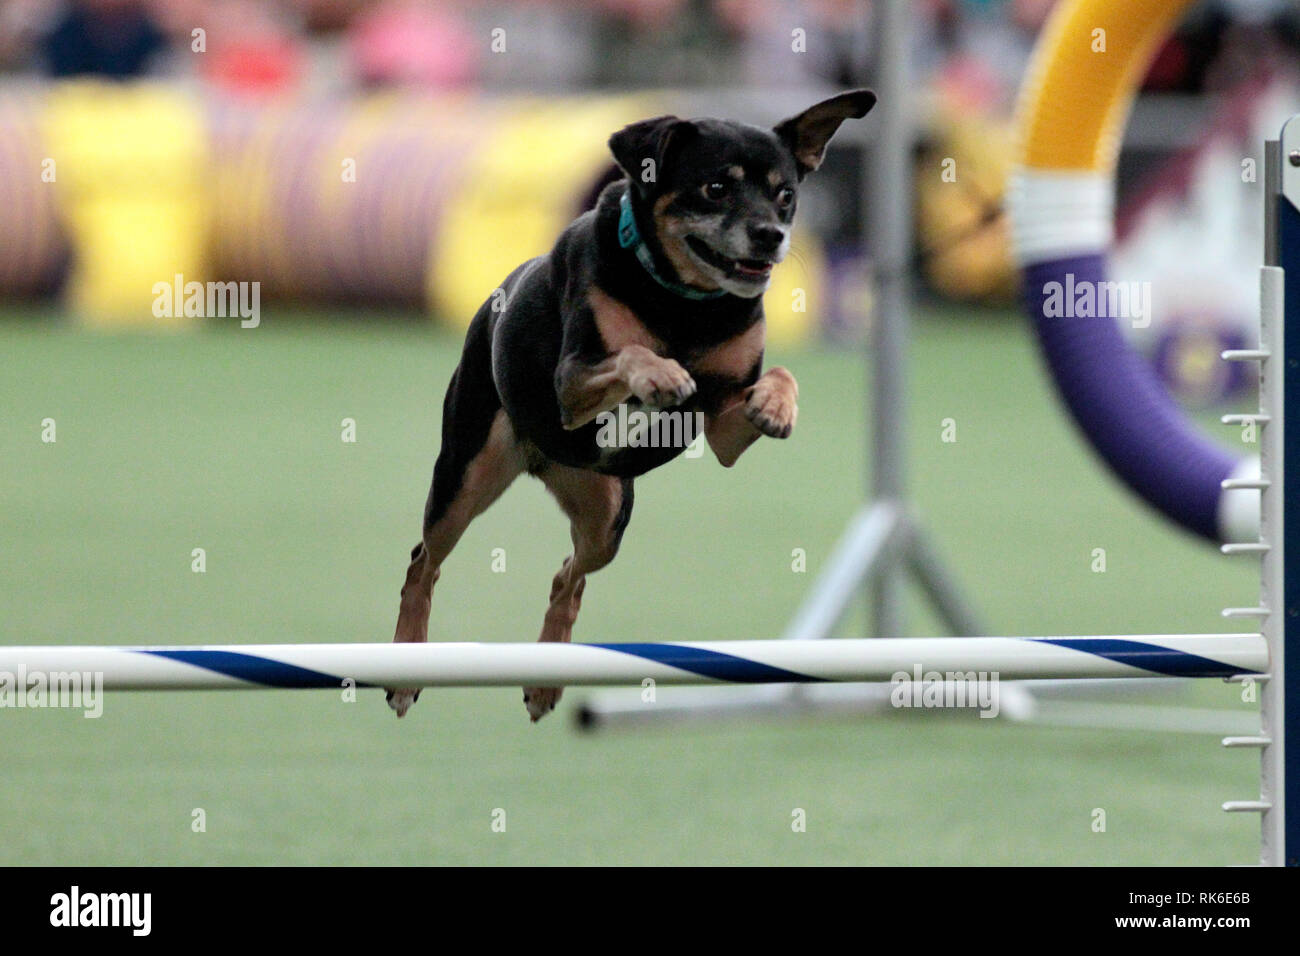 Westminster Dog Show - 9 February 2019, New York City:  Lucy, an All American Dog, competing in the preliminaries of the Westminster Kennel Club's Master's Agility Championship. Stock Photo